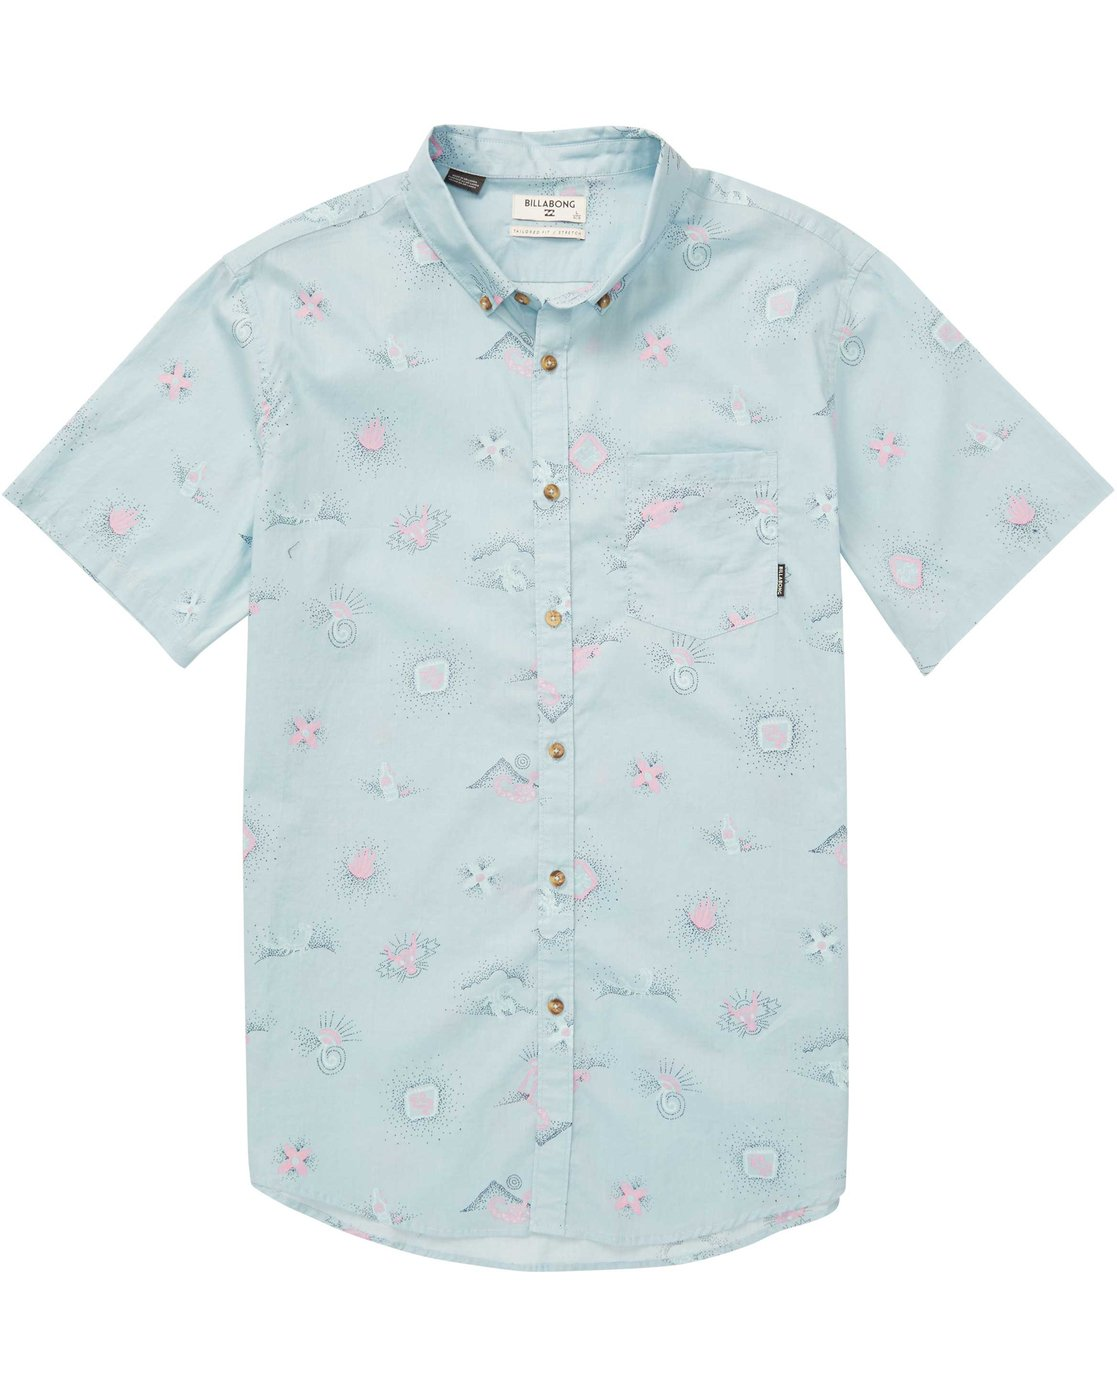 f2c89108 0 Boys' Sundays Mini Short Sleeve Shirt Blue B508QBSM Billabong